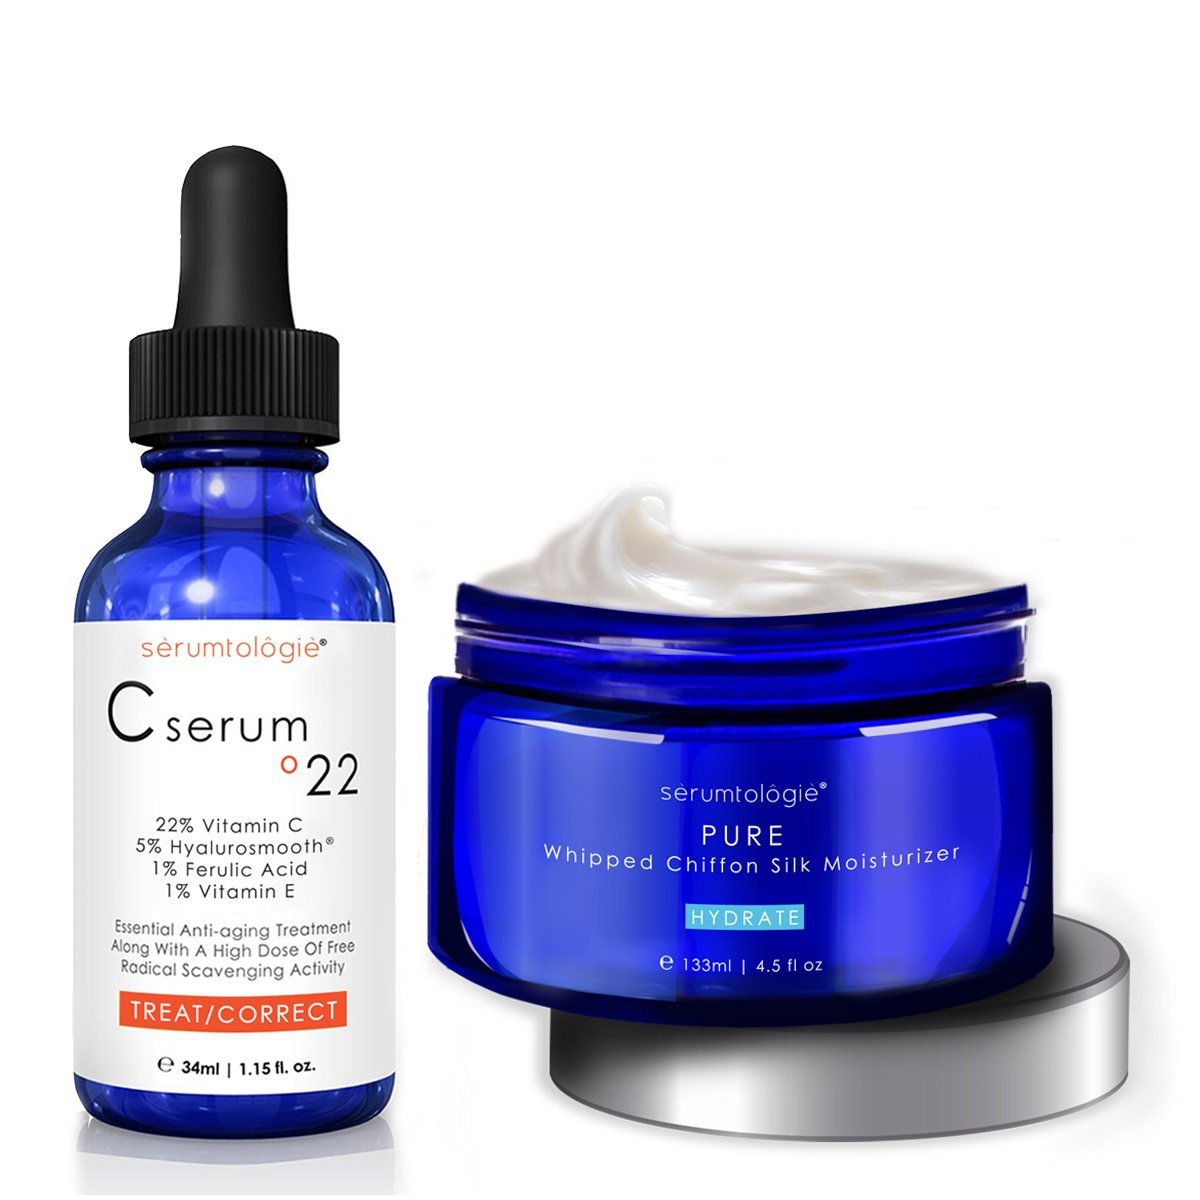 serumtologie C serum º22 & PURE Whipped Chiffon MAX SAVINGS Bundle